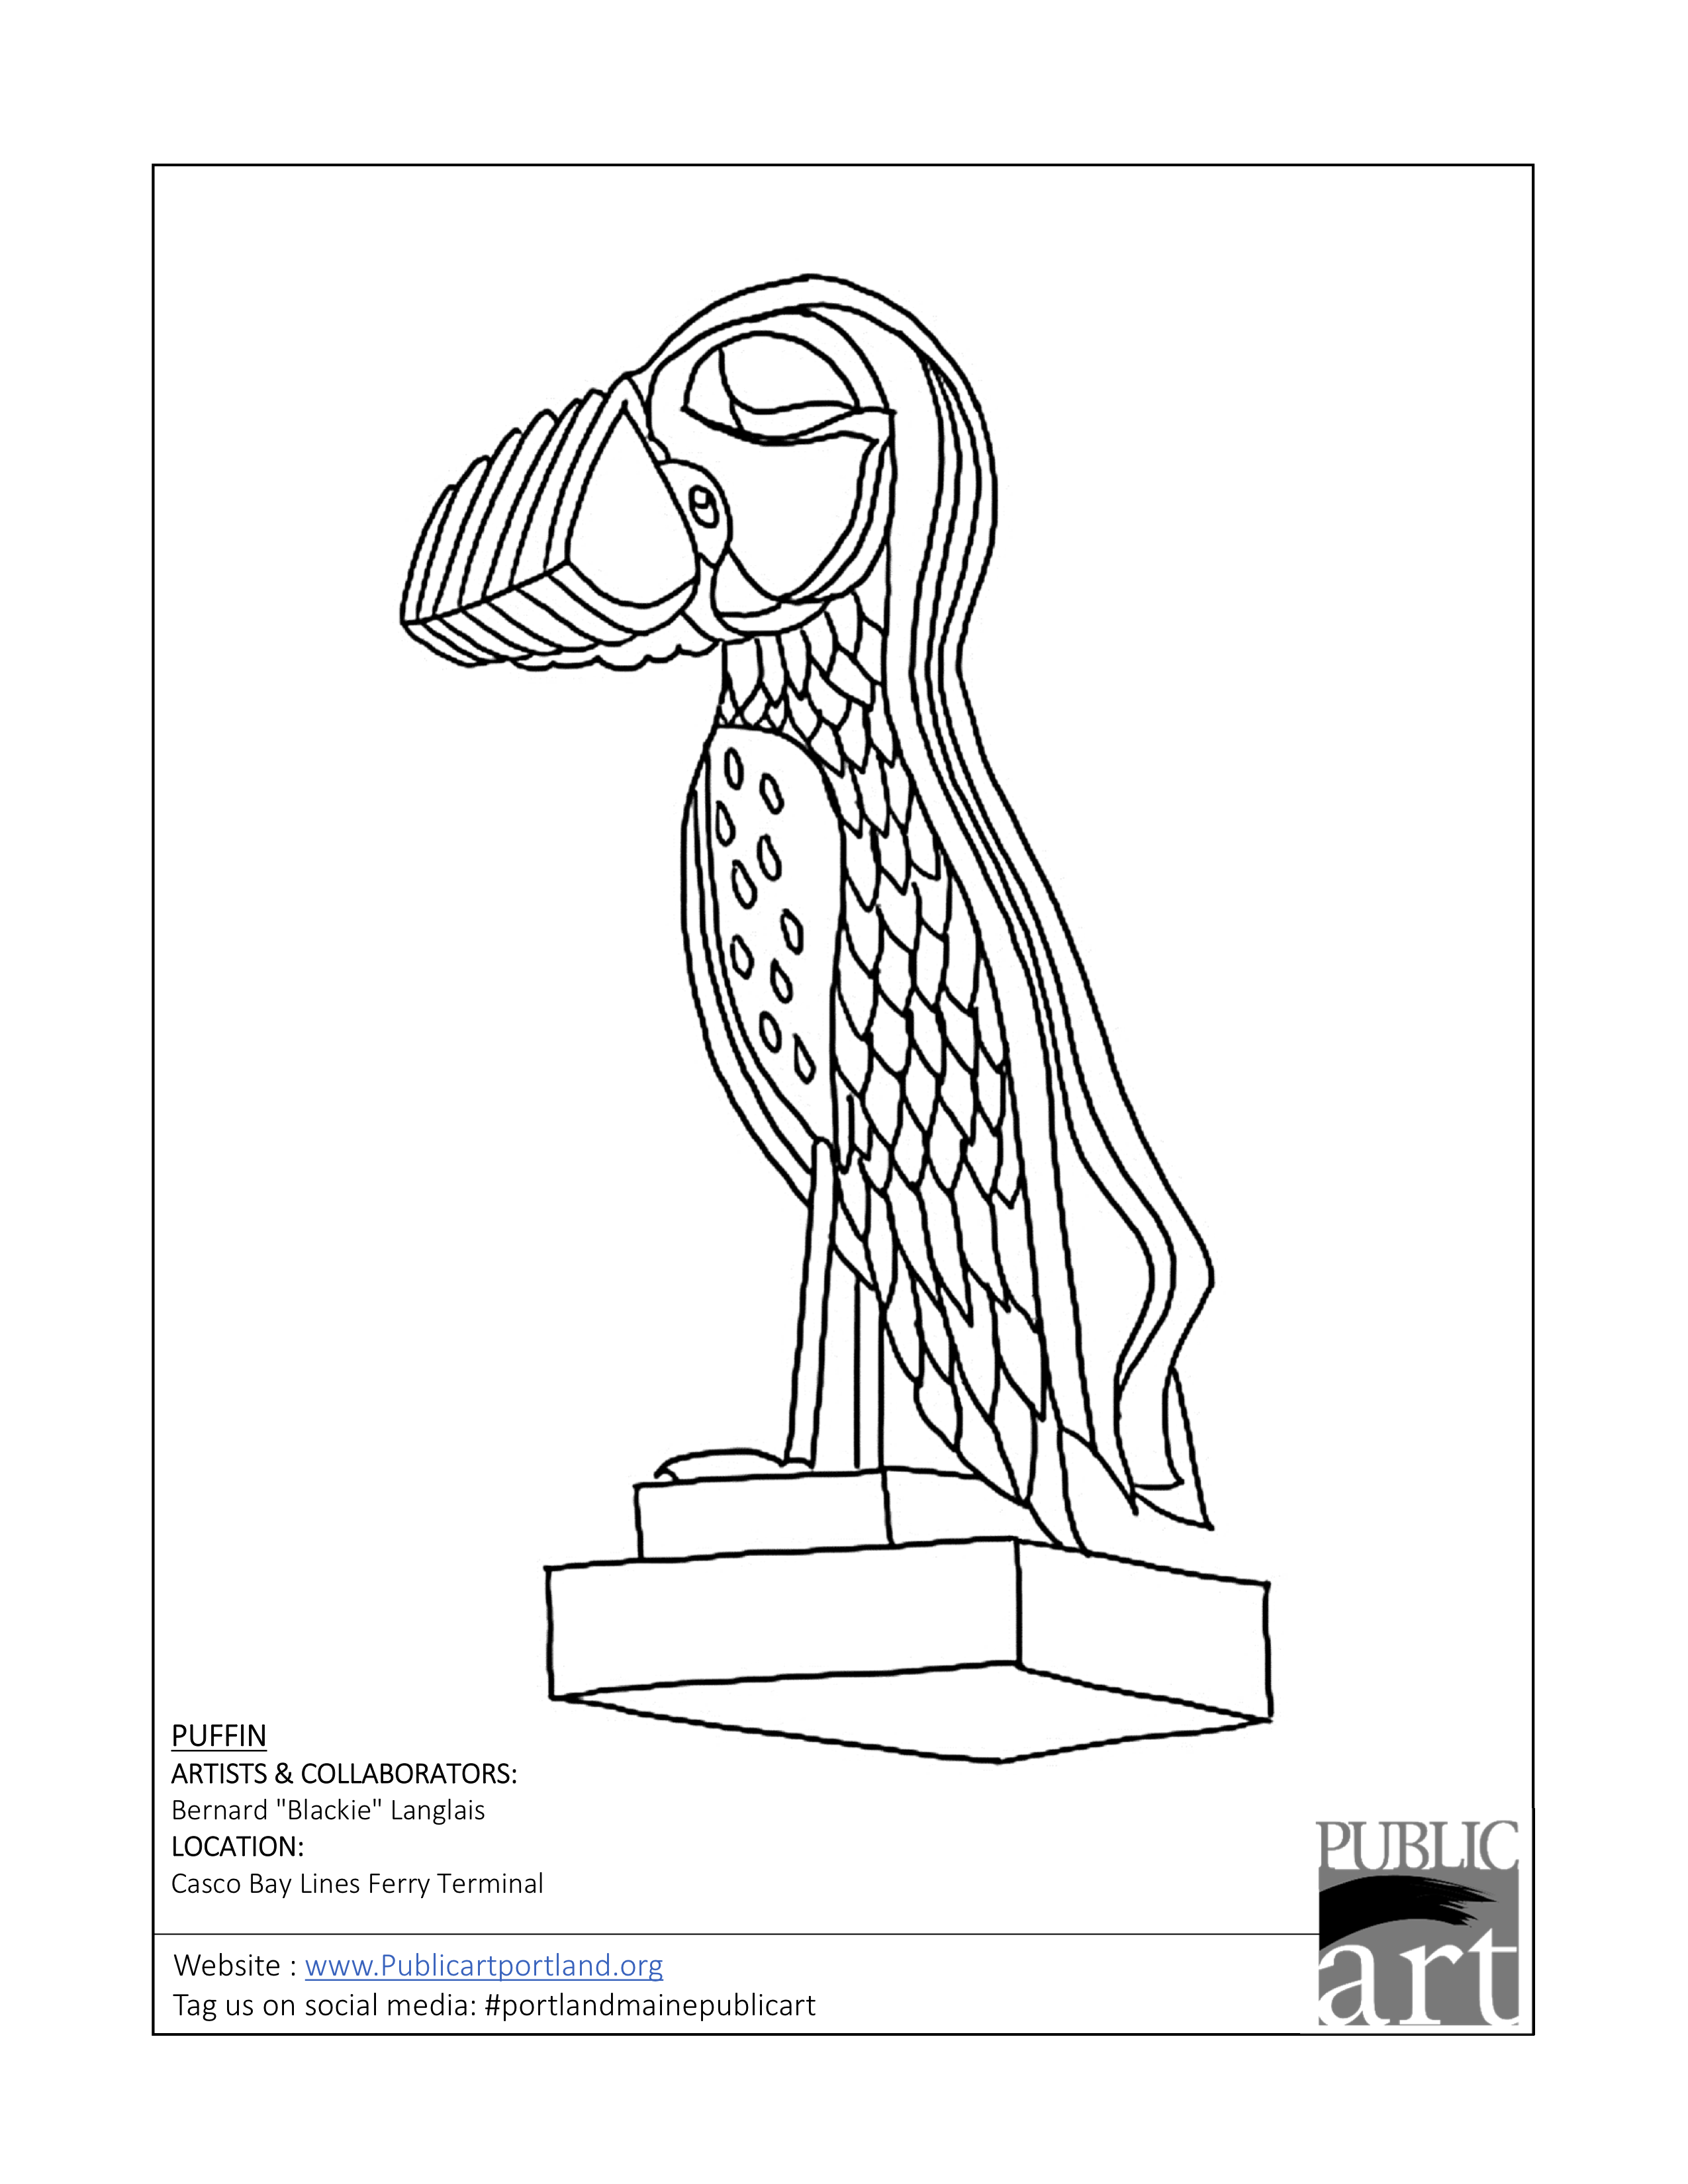 Portland Public Art Committee coloring sheet - Puffin